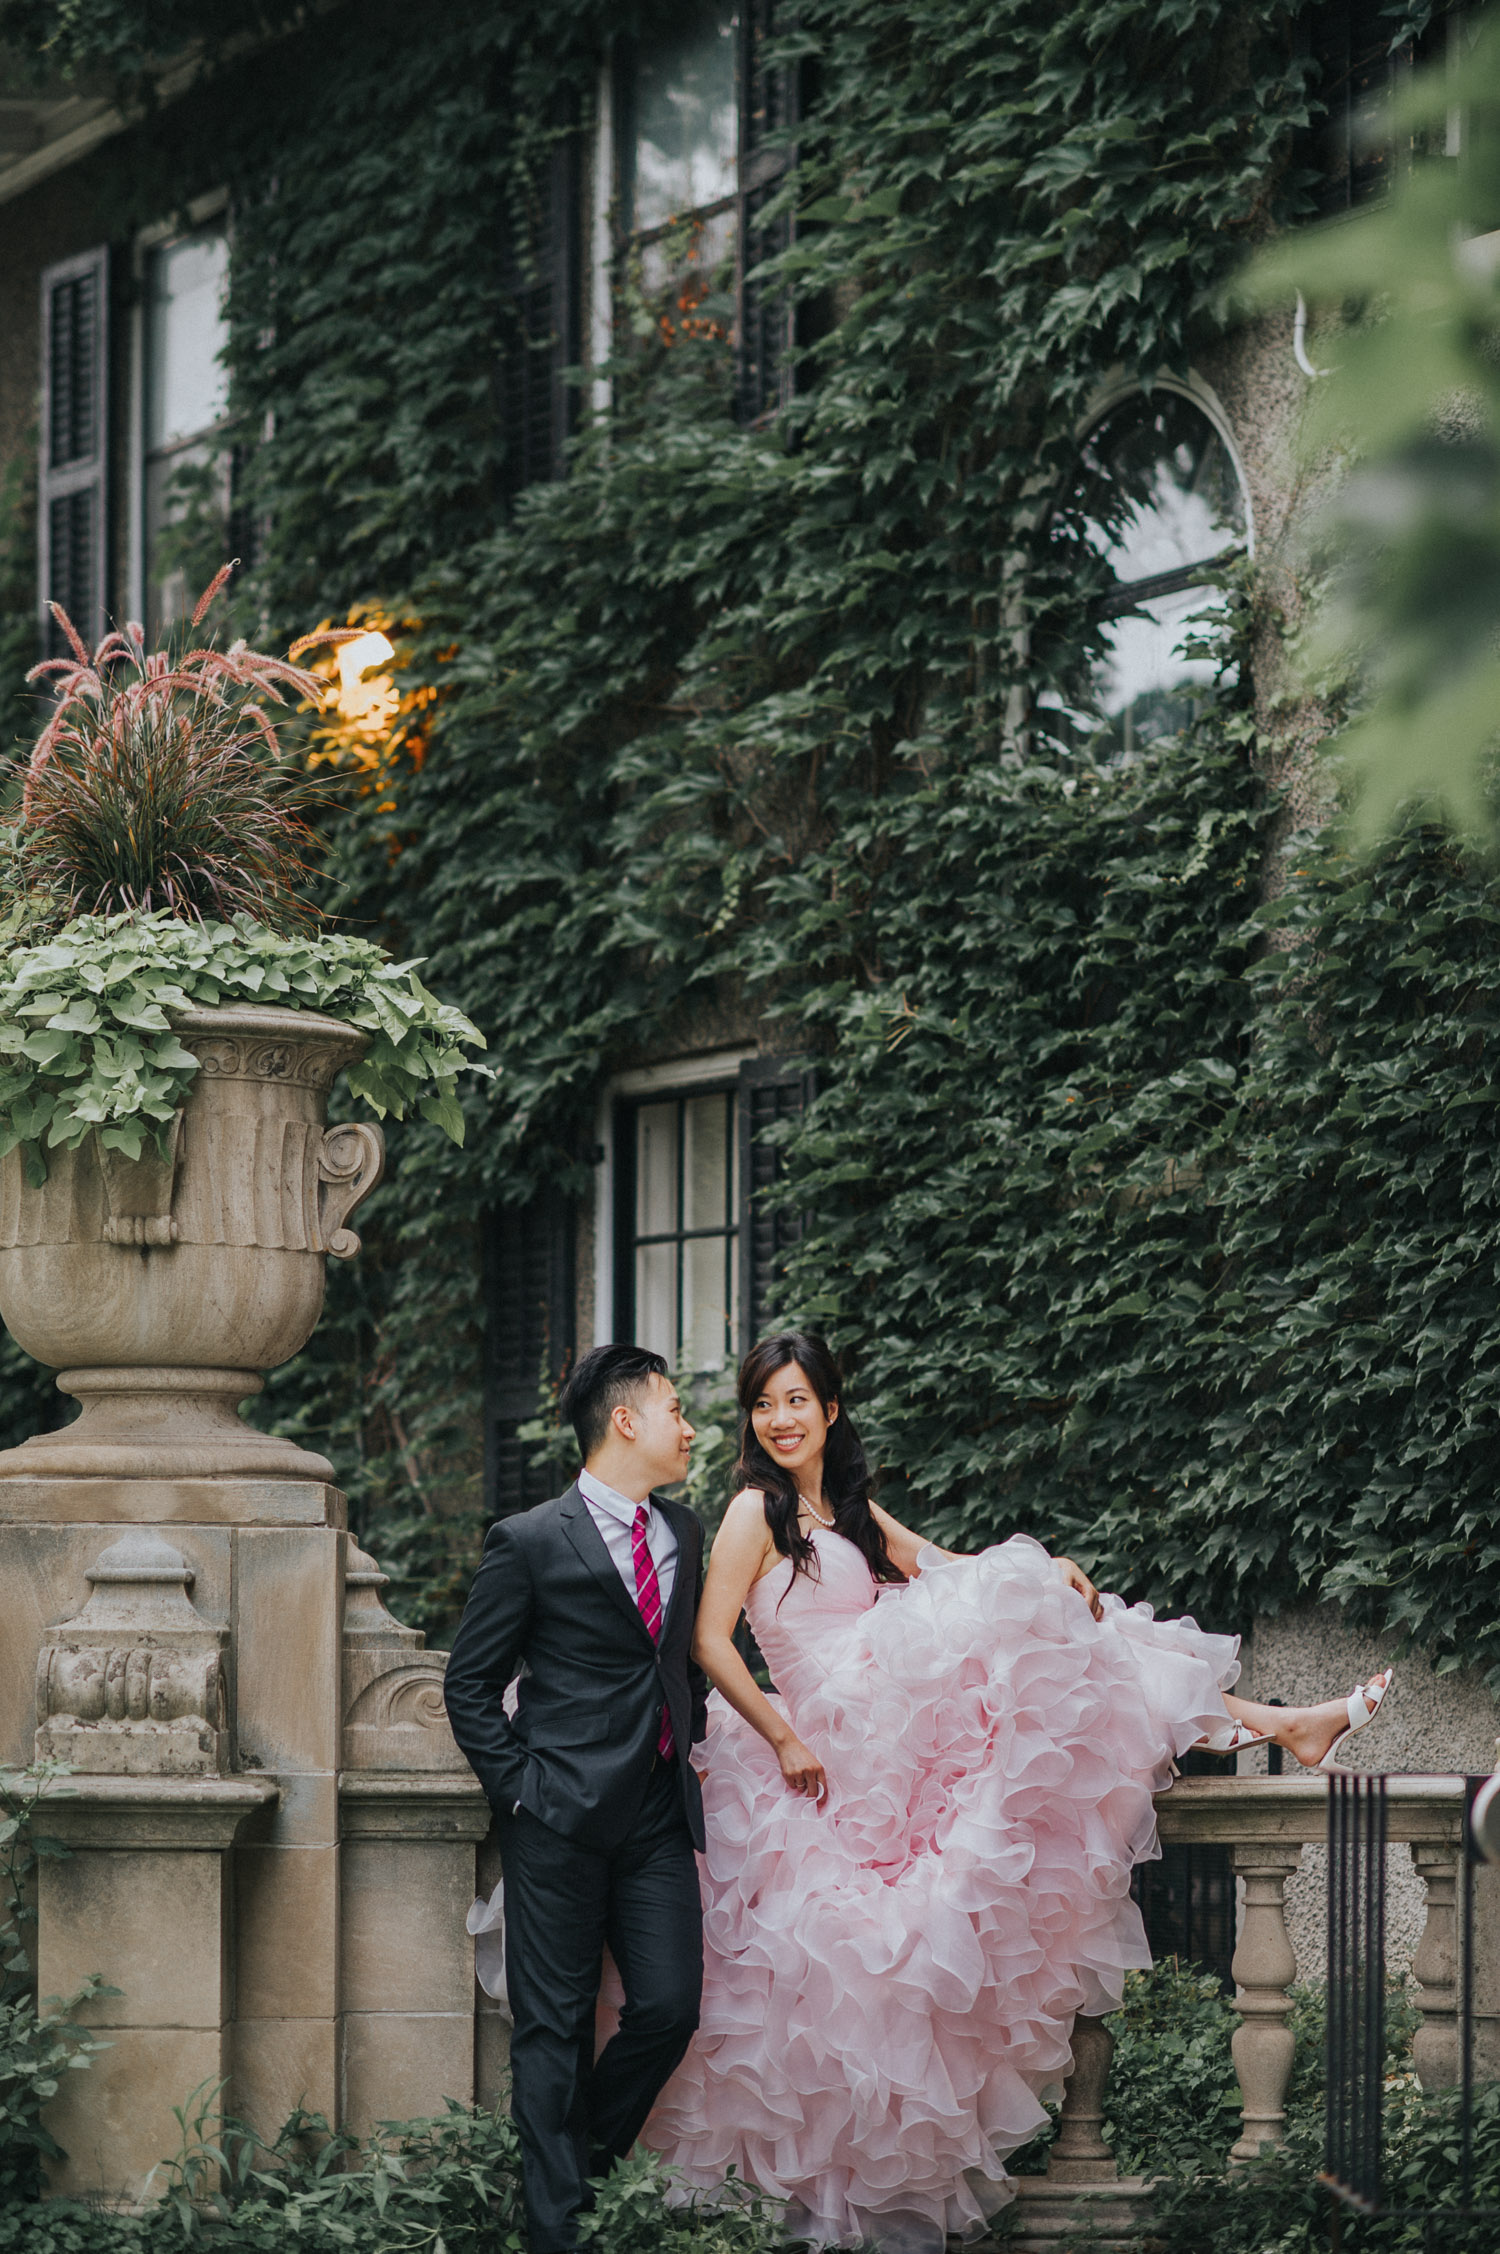 Toronto Prewedding photo Glendon Campus